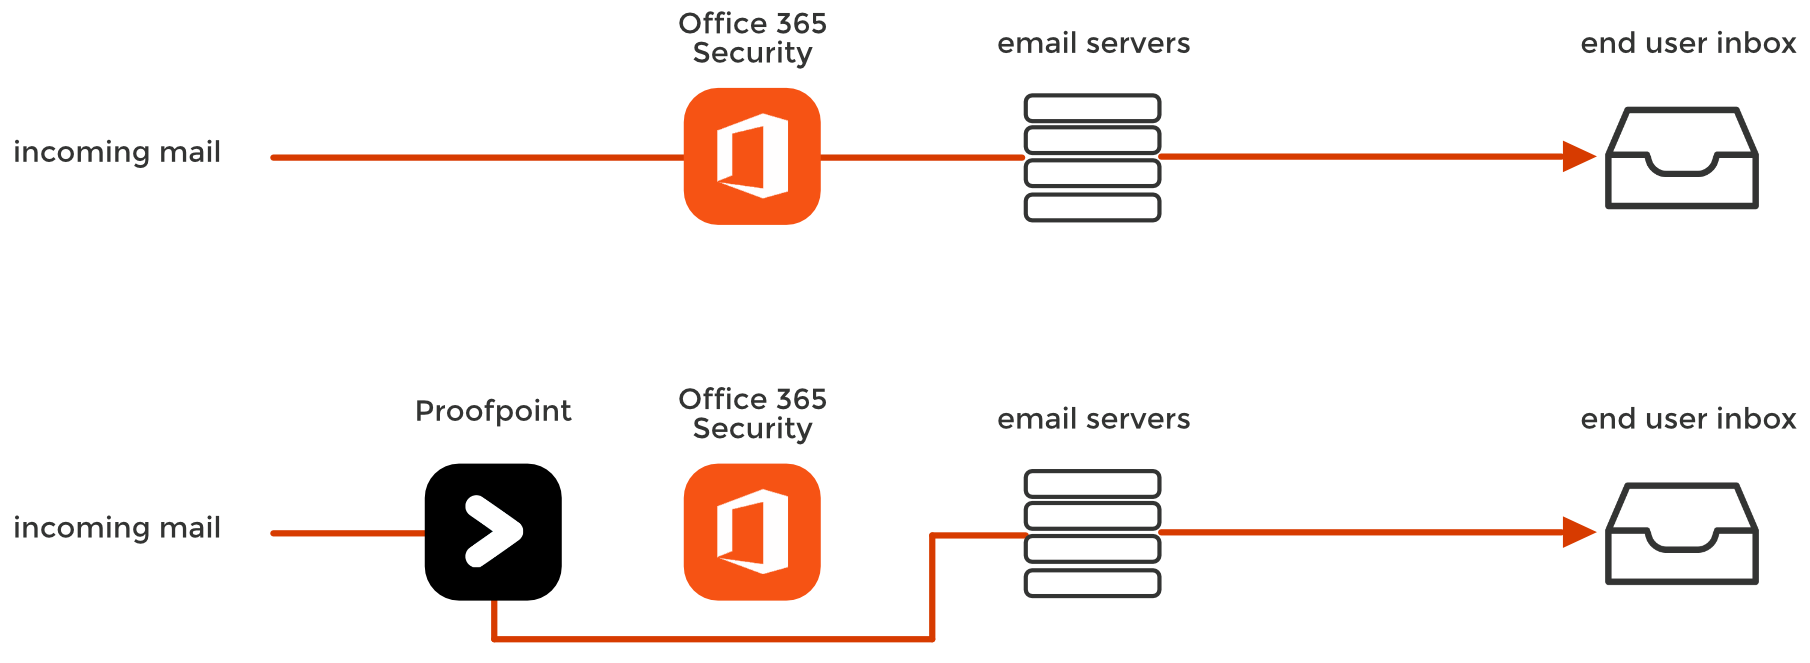 office 365 proofpoint example